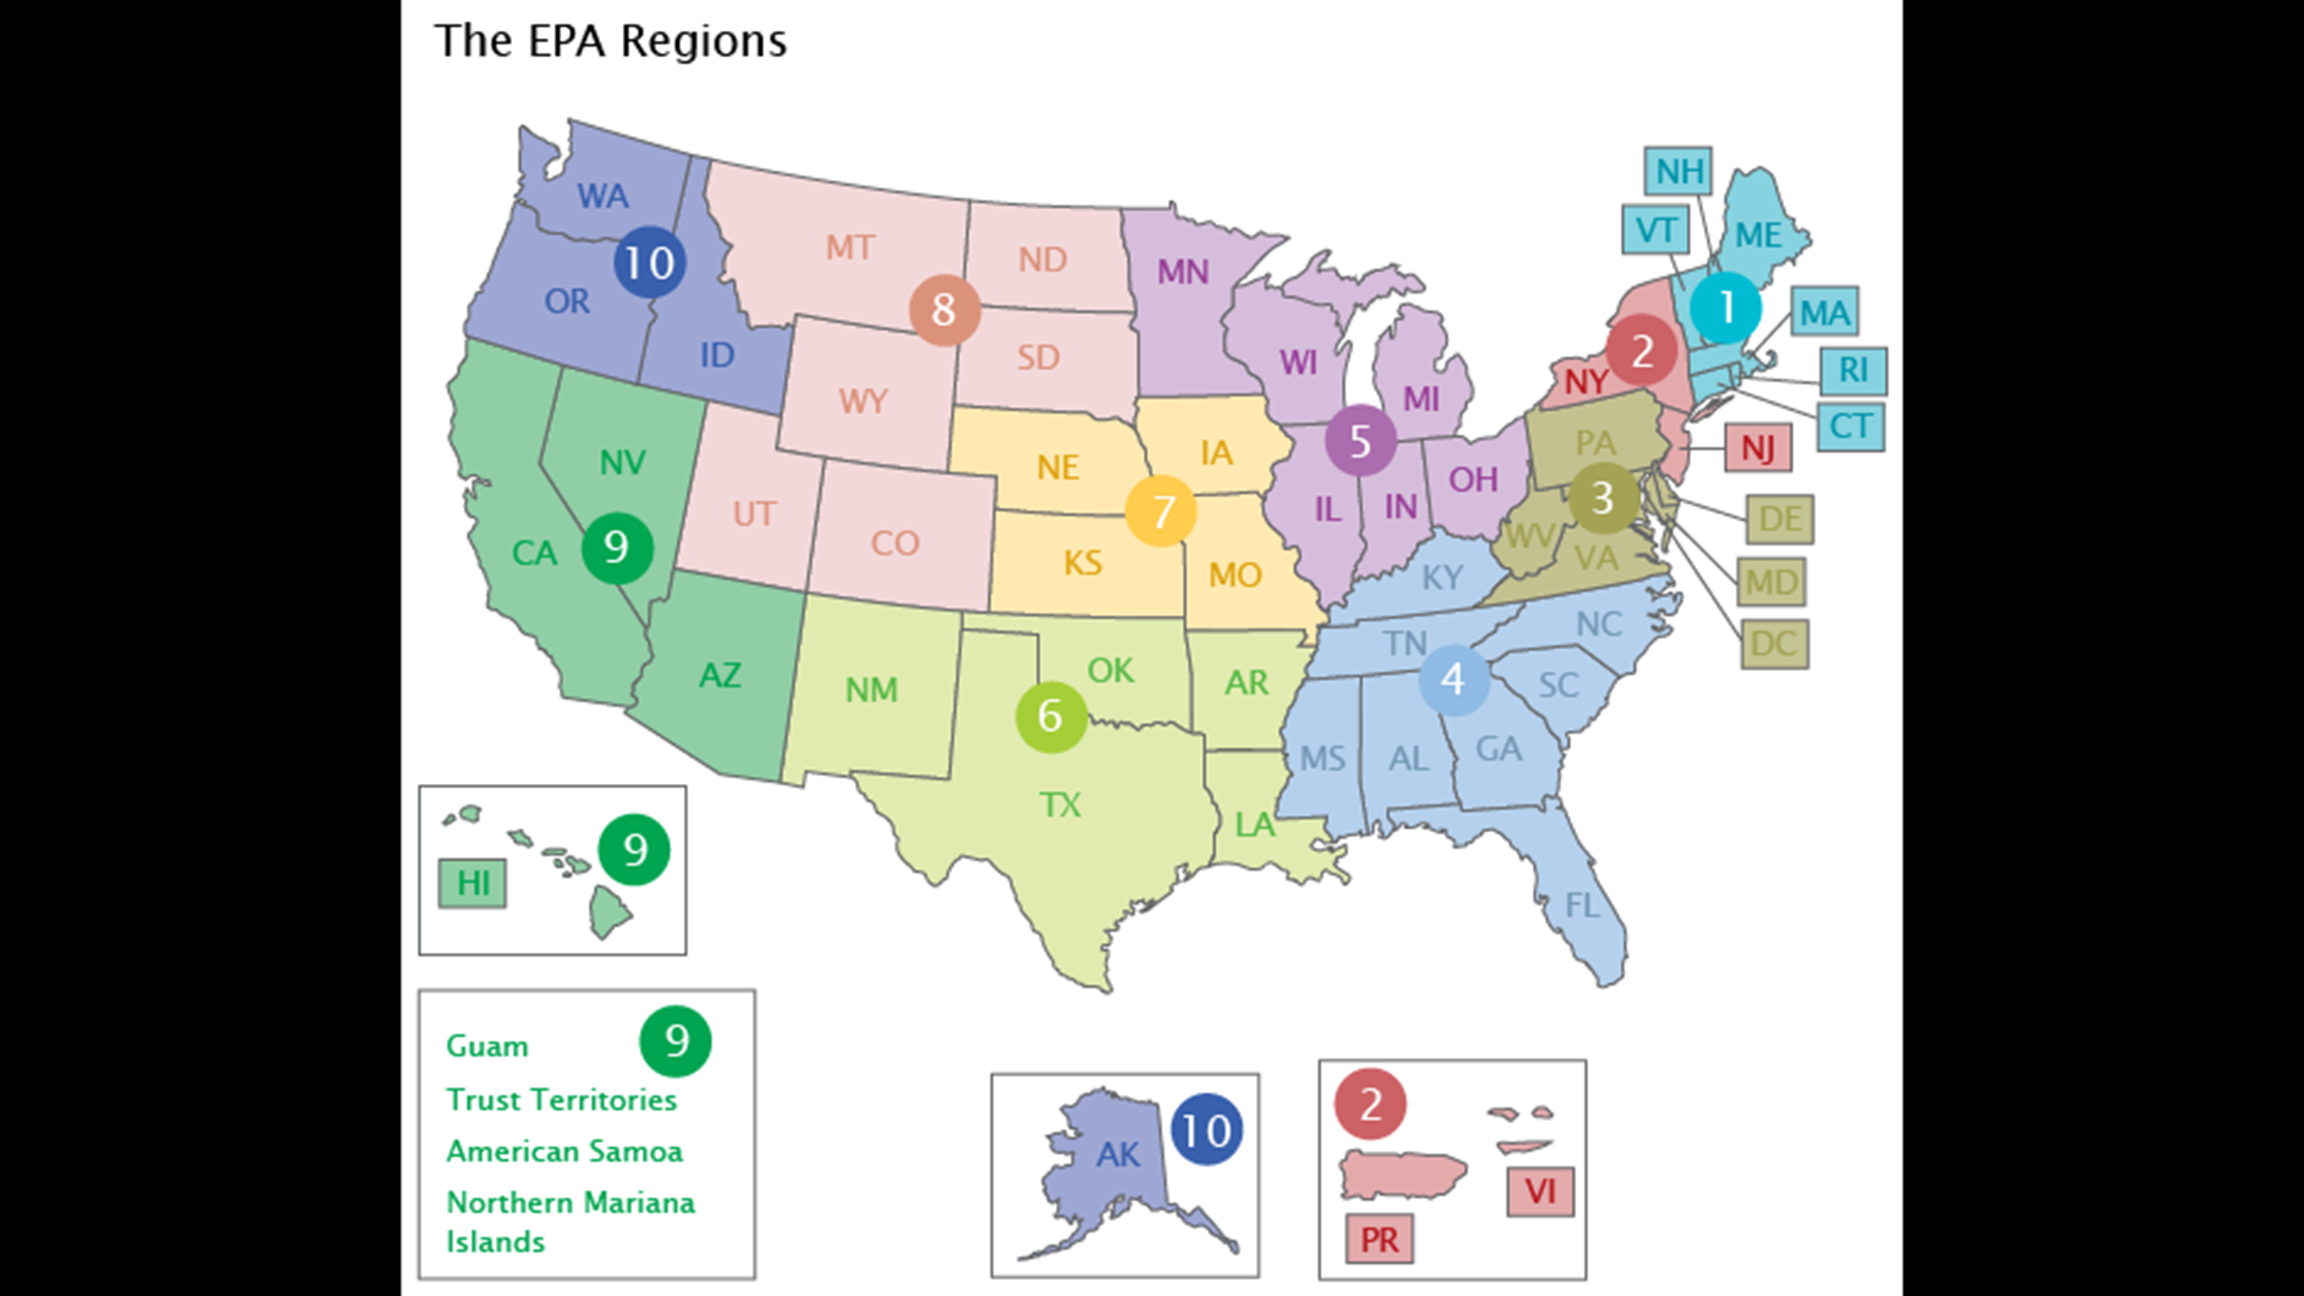 The EPA's Chicago-based Region 5 office coordinates the agency's work in Illinois, Indiana, Ohio, Michigan, Wisconsin and Minnesota. (EPA)